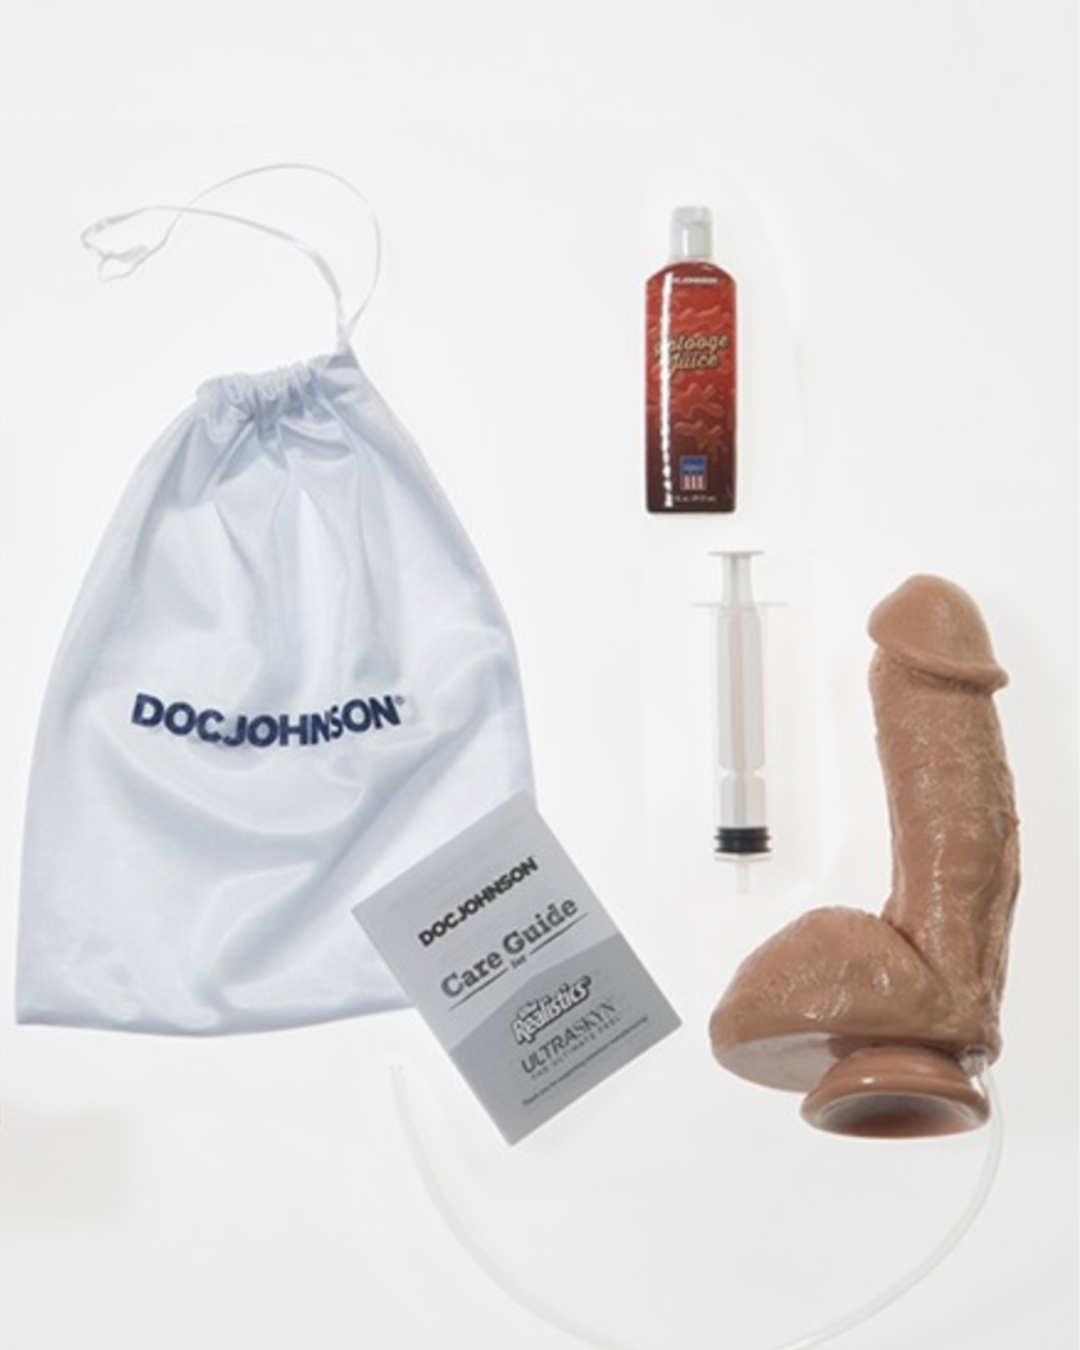 Squirting Realistic Cock 7.4 Inch Ejaculating Suction Cup Dildo  - Vanilla box contents